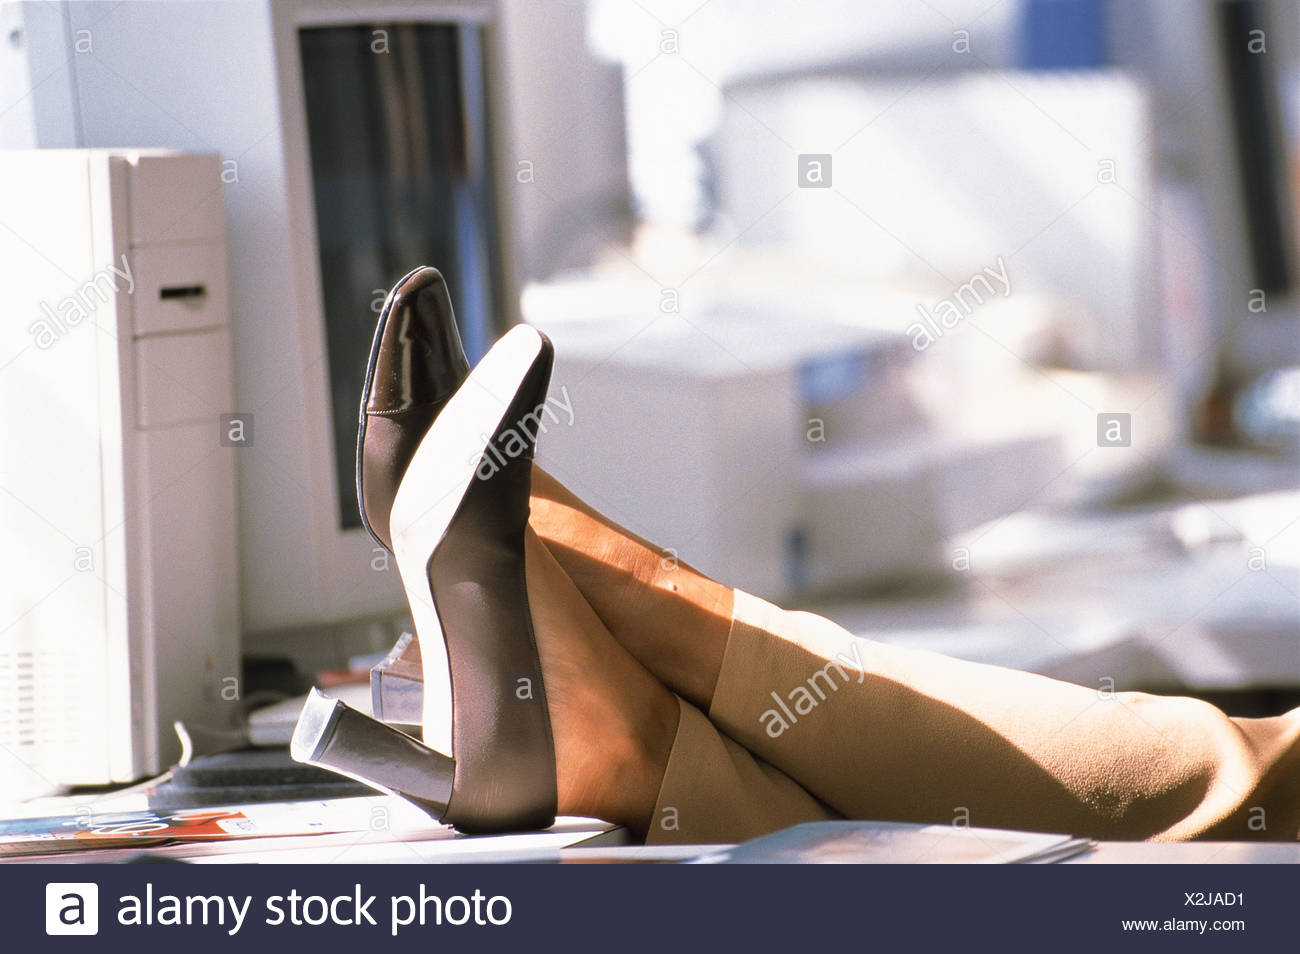 dd78c4947440f9 BUSINESSWOMAN WITH HER FEET UP ON THE DESK Stock Photo  276998541 ...